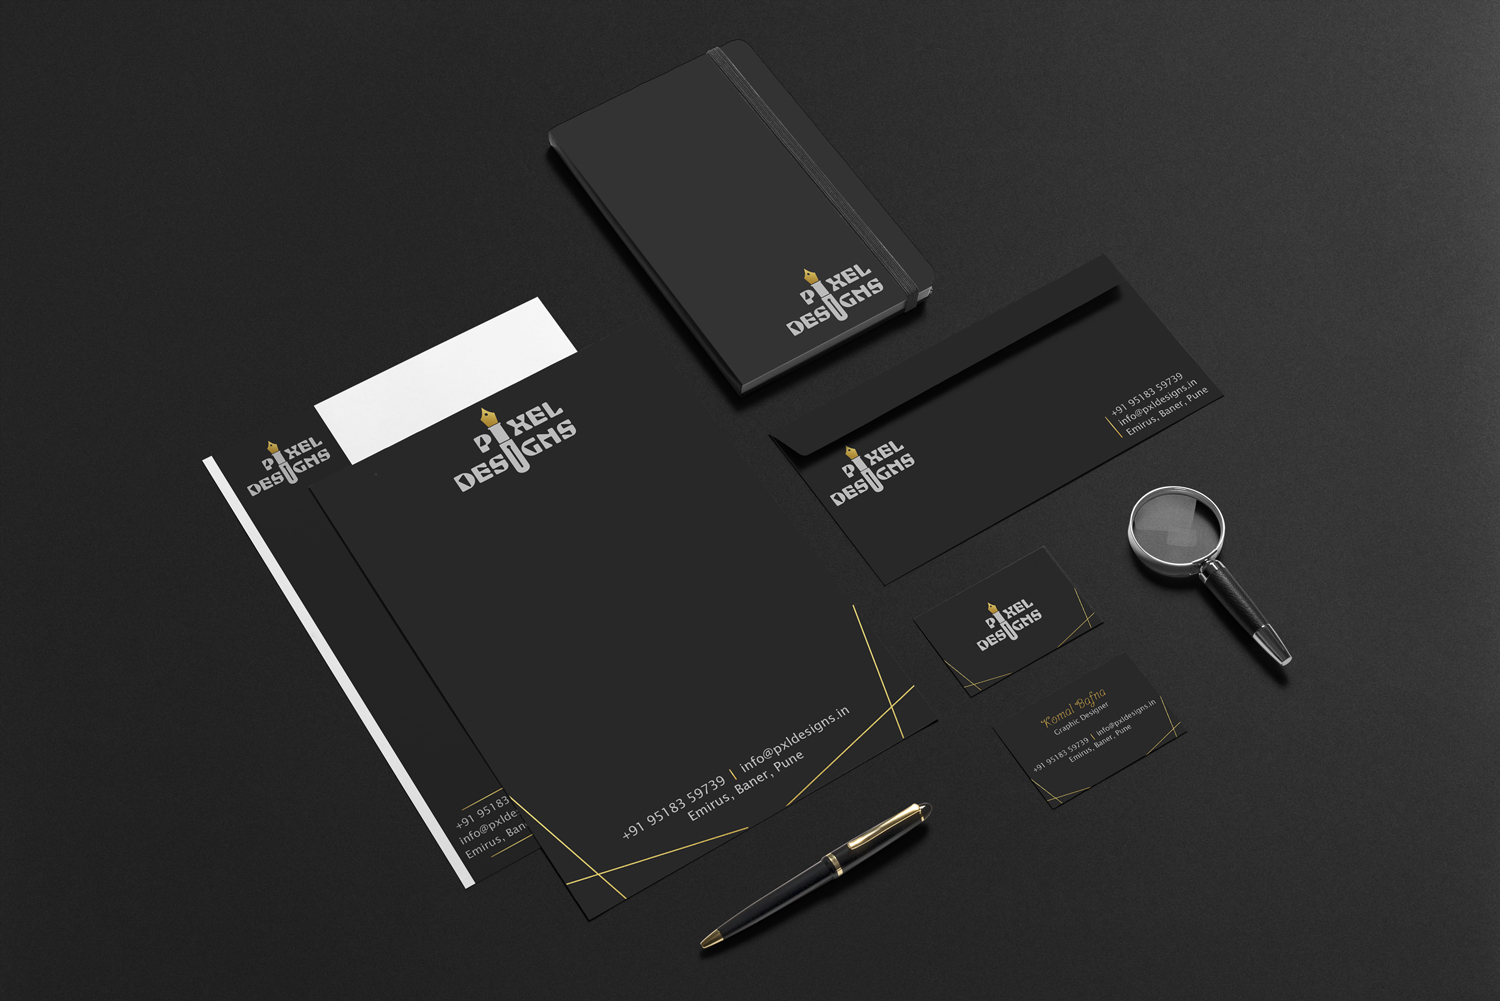 pixel-designs-gold-stationery-design